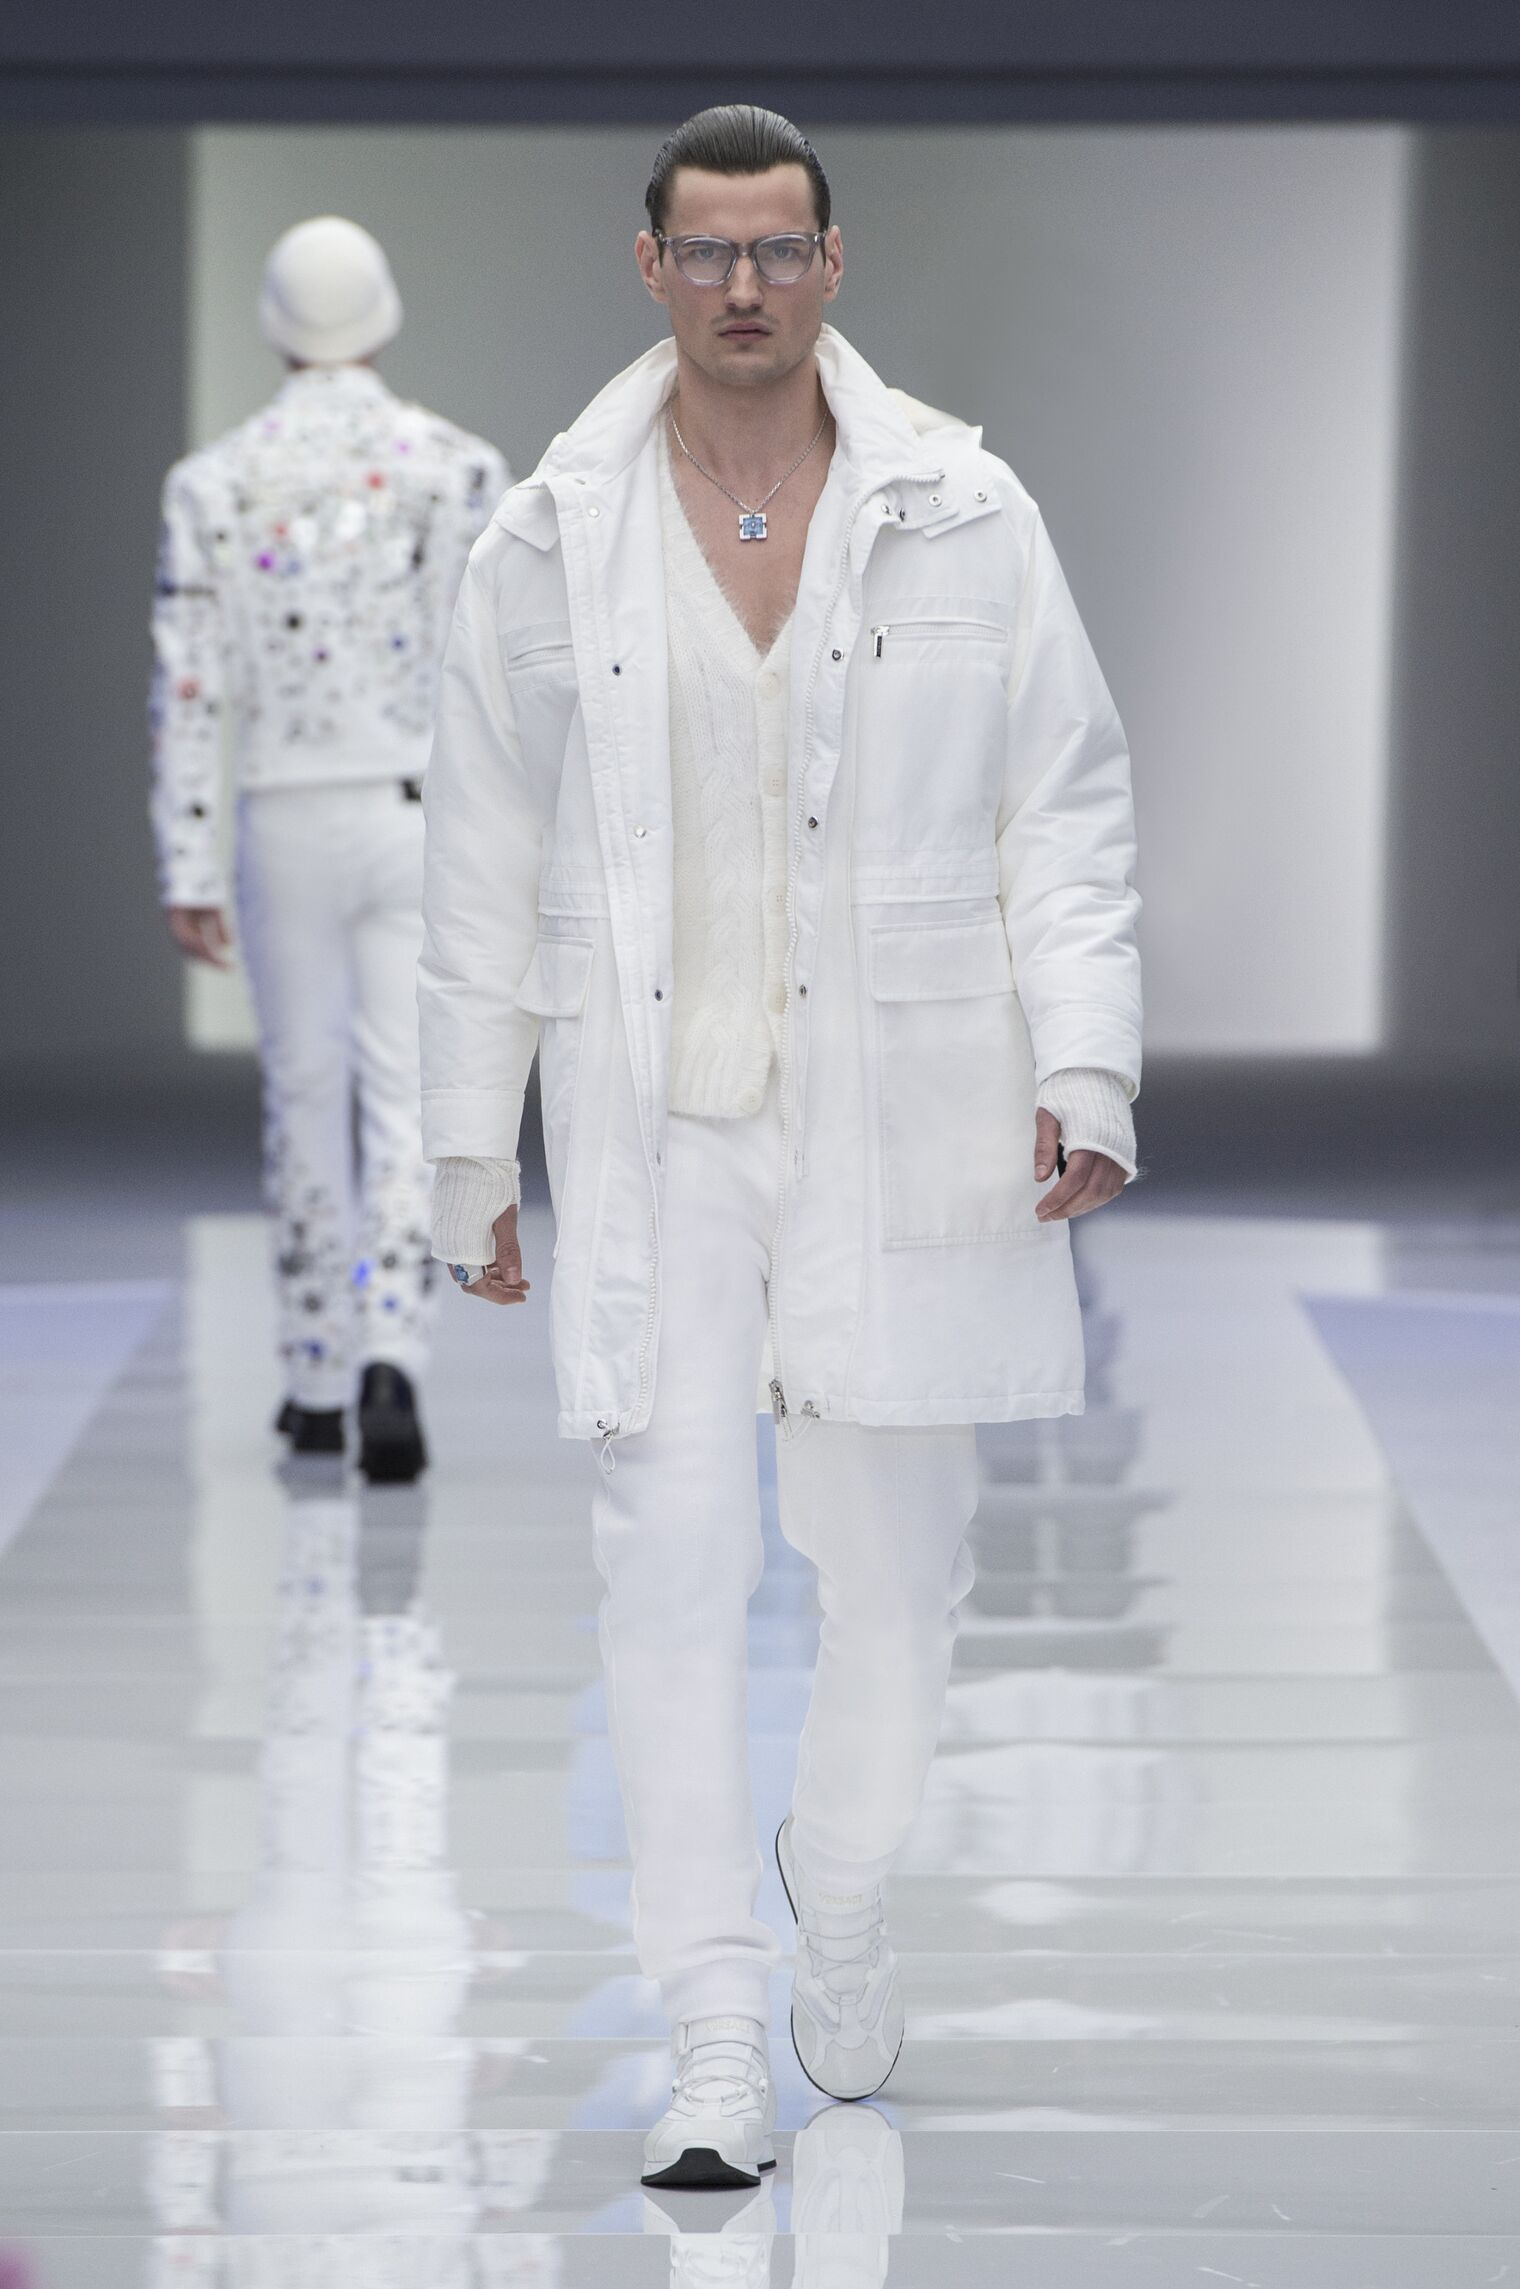 Fashion Man Model Versace Catwalk